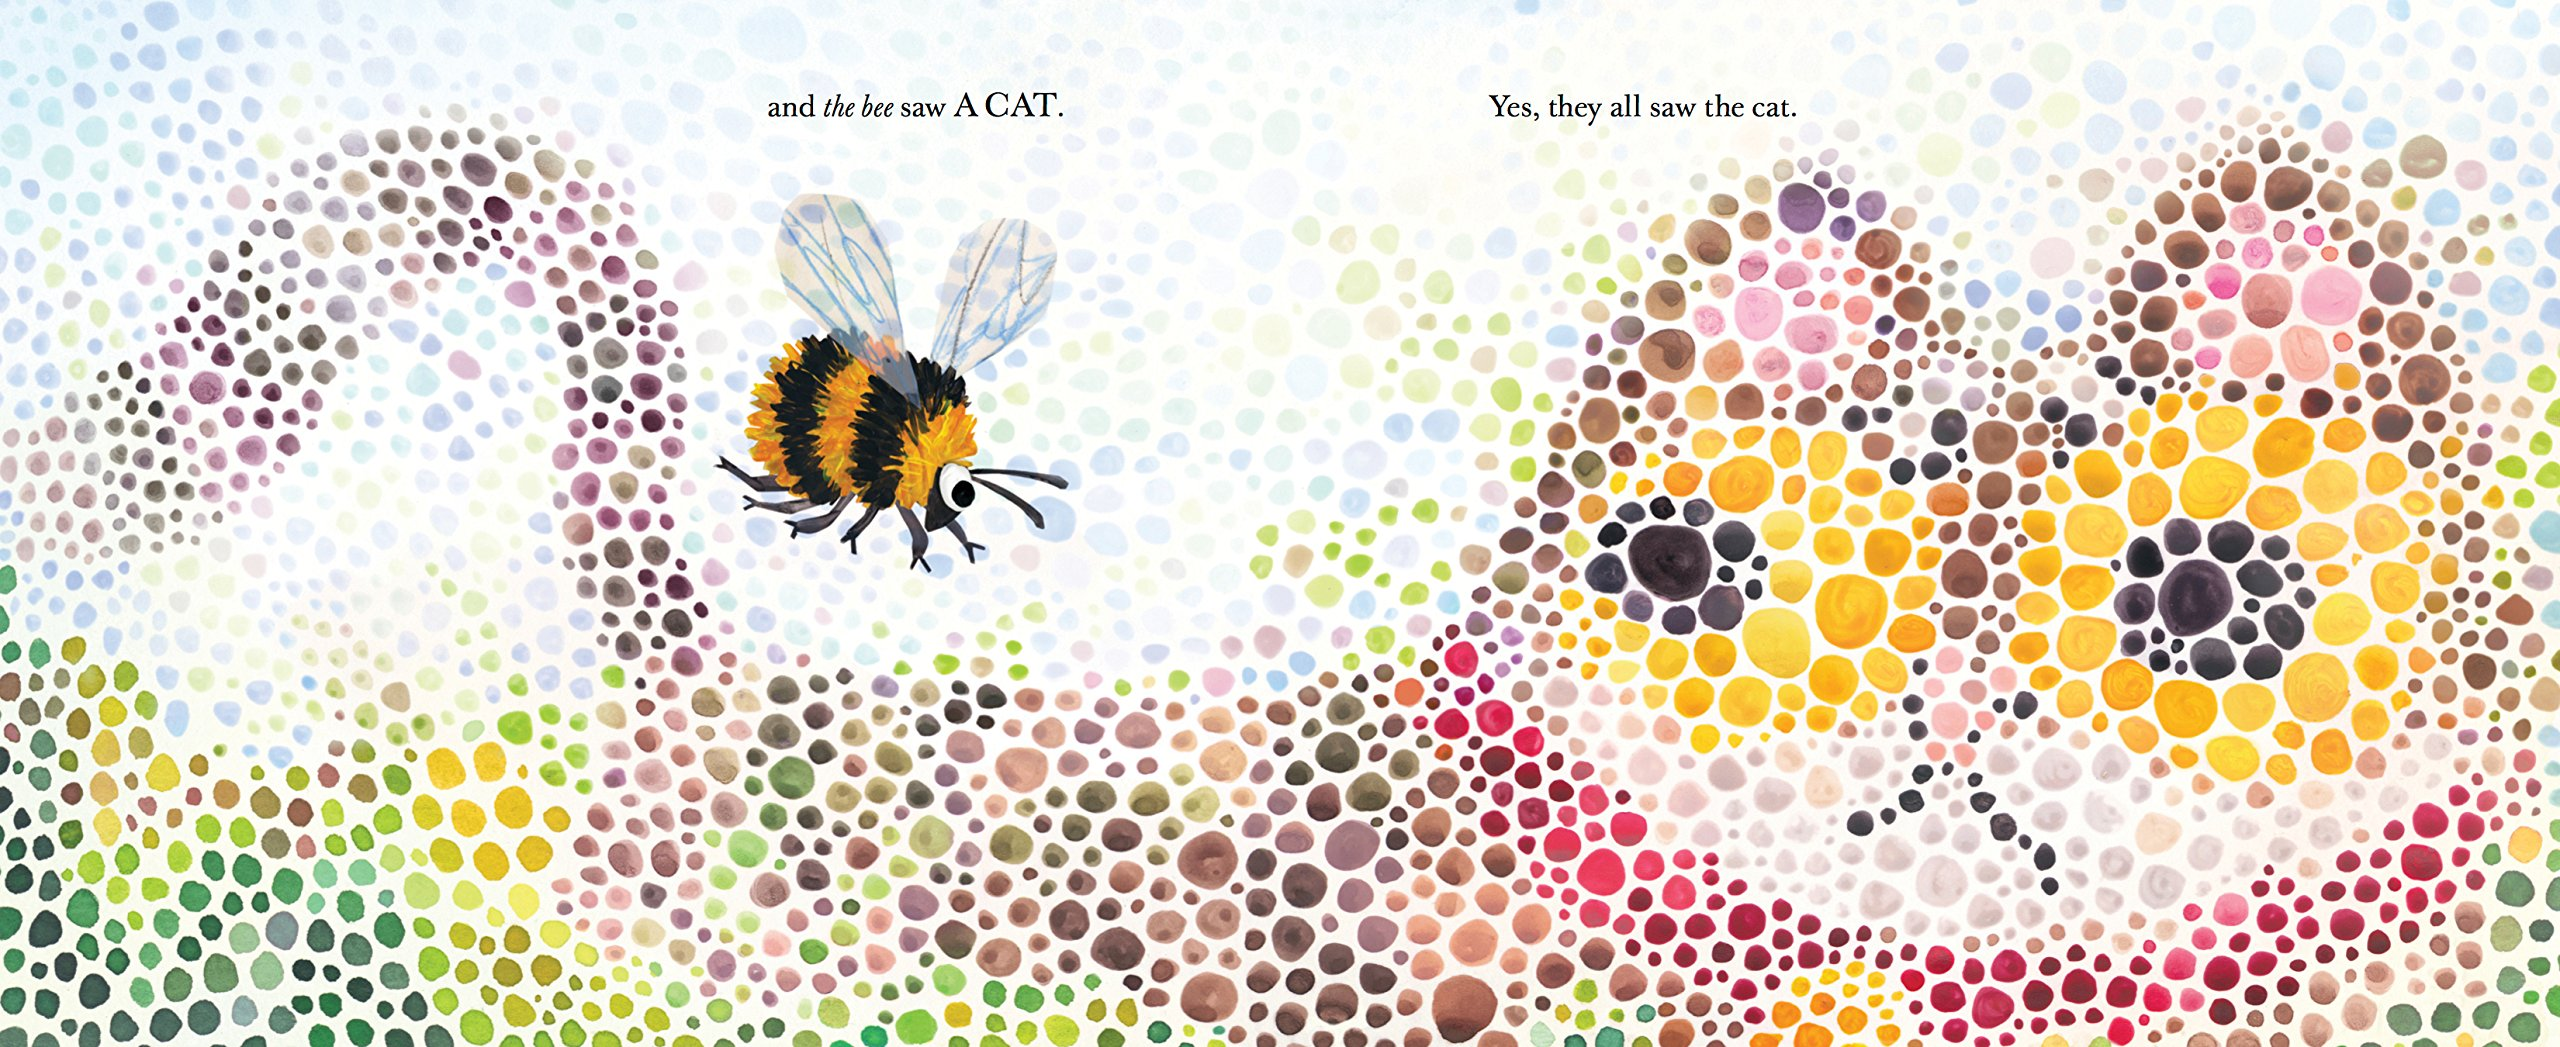 They All Saw a Cat by Chronicle Books (Image #8)